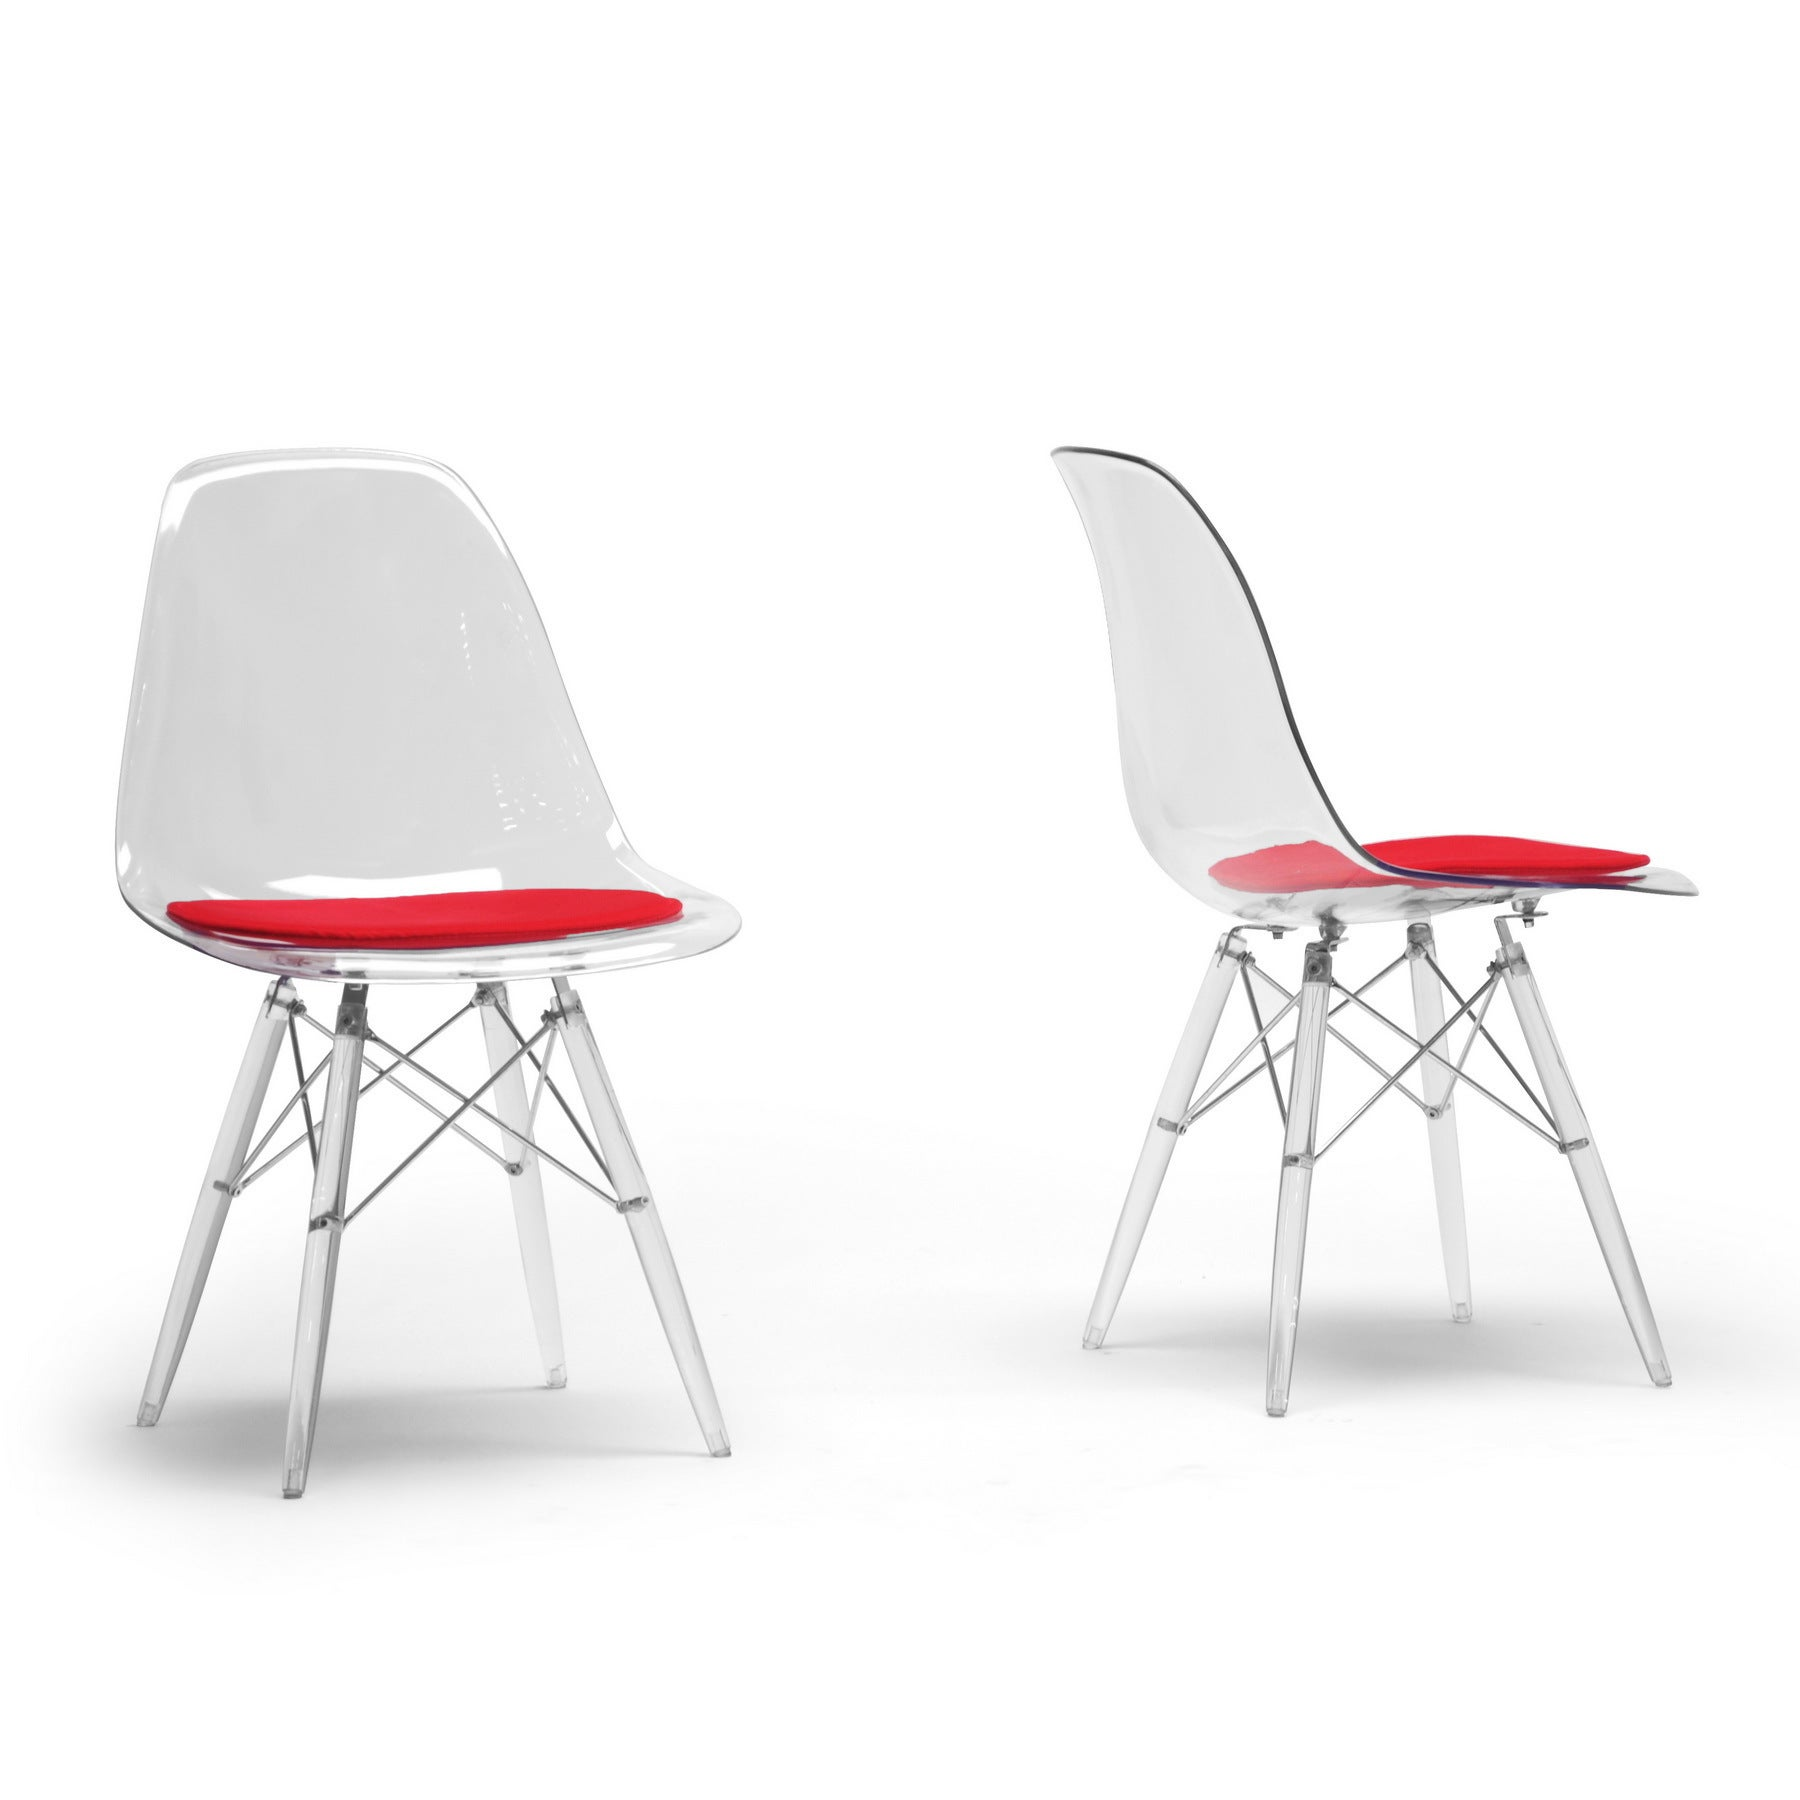 Maisie clear plastic mid century modern shell chair set of 2